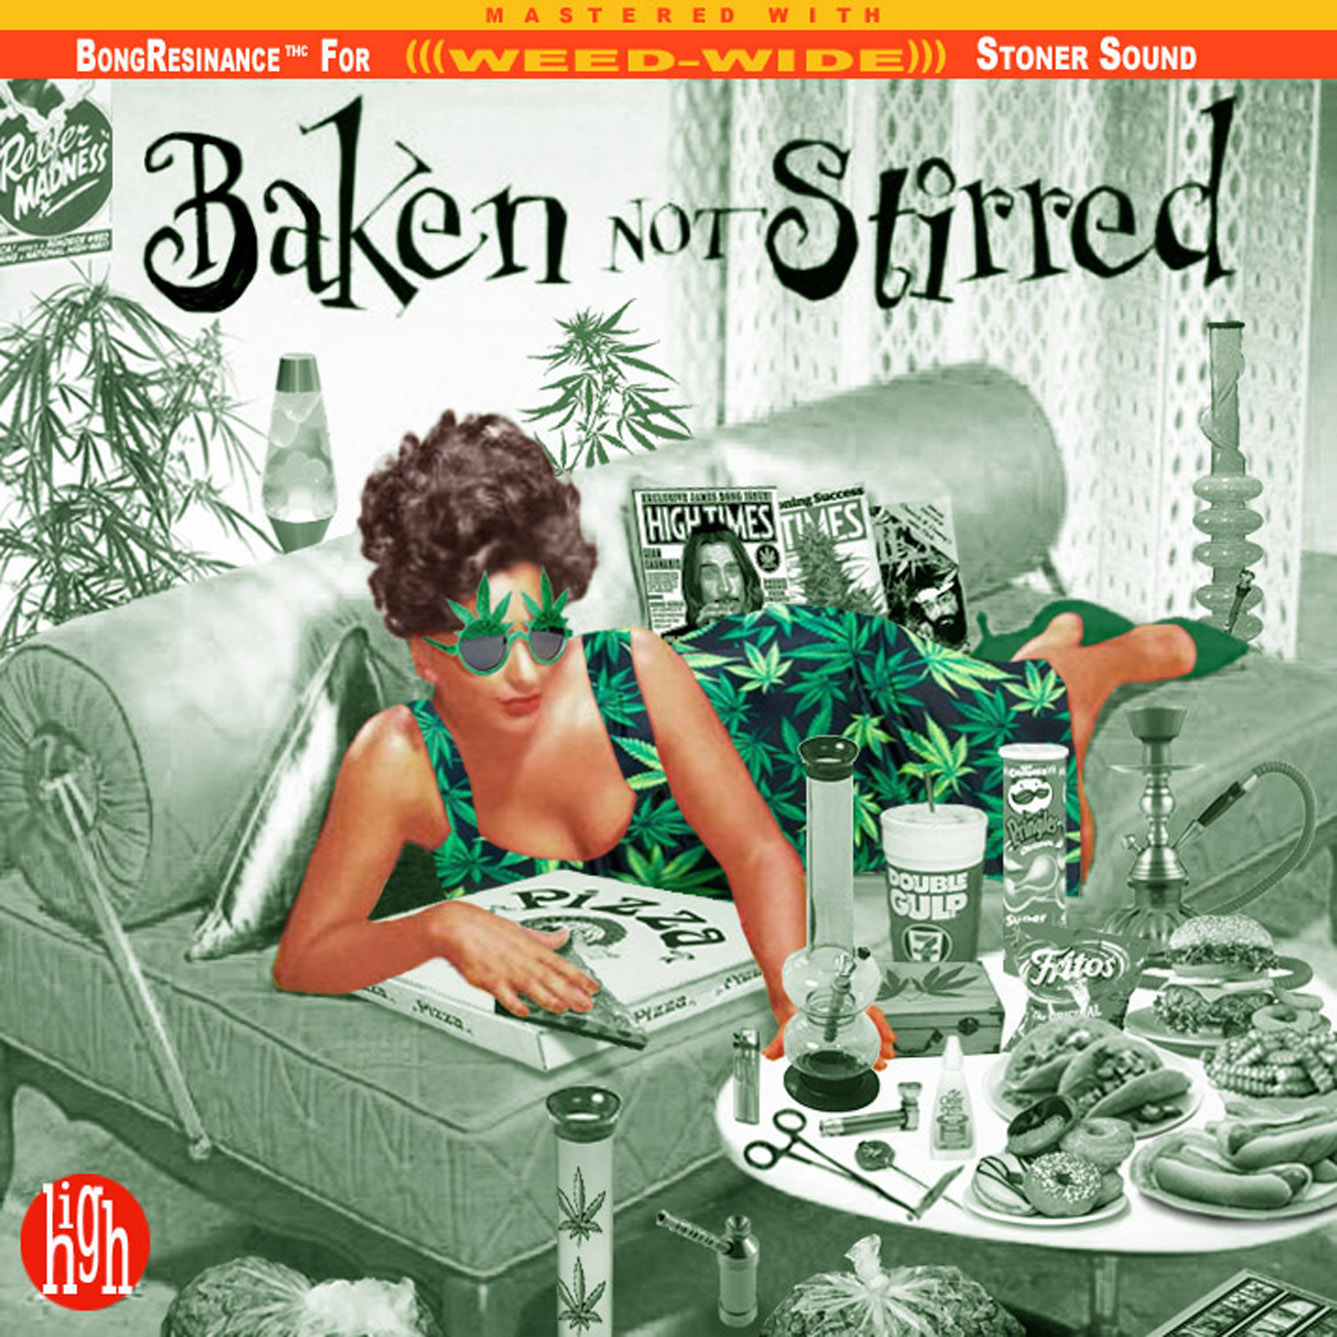 Album cover parody of Shaken Not Stirred by VARIOUS ARTISTS (1996-02-27) by James Bond themes